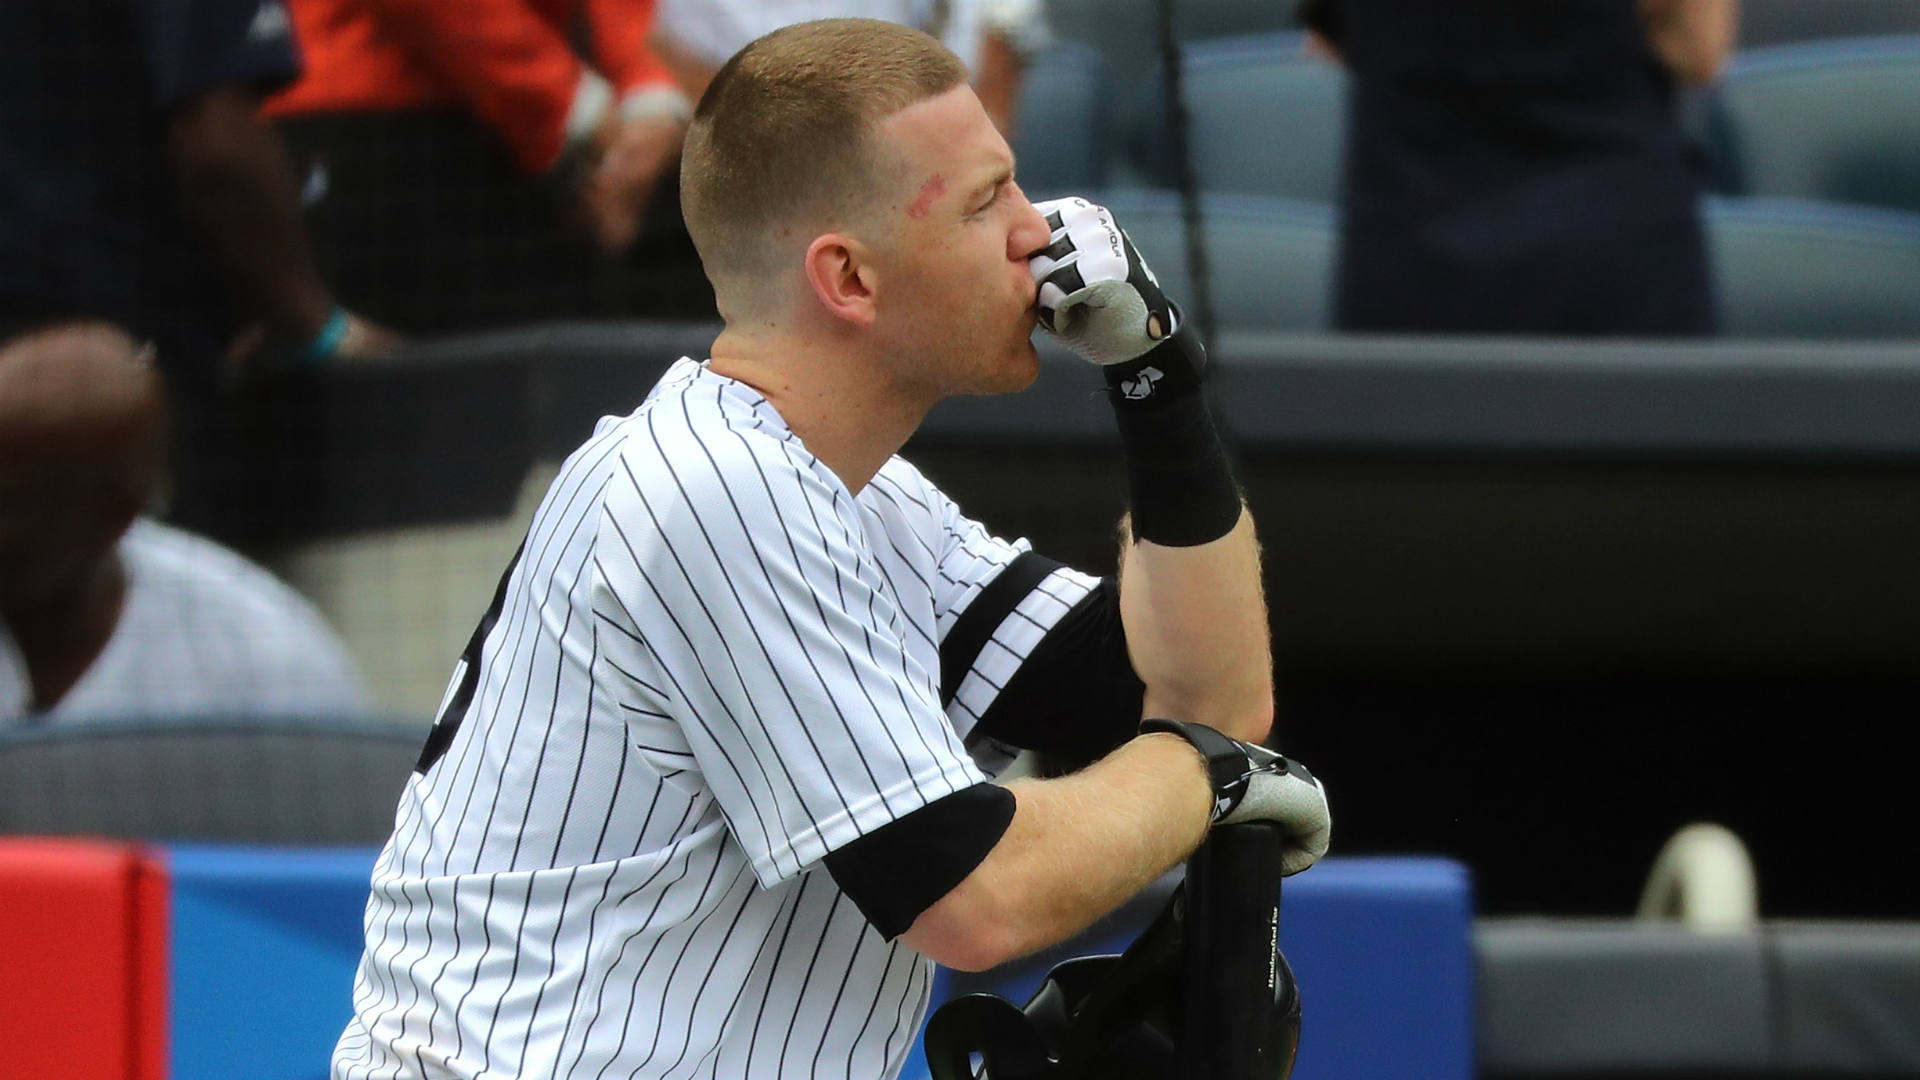 Young Fan Injured by Foul Ball at Yankee Stadium